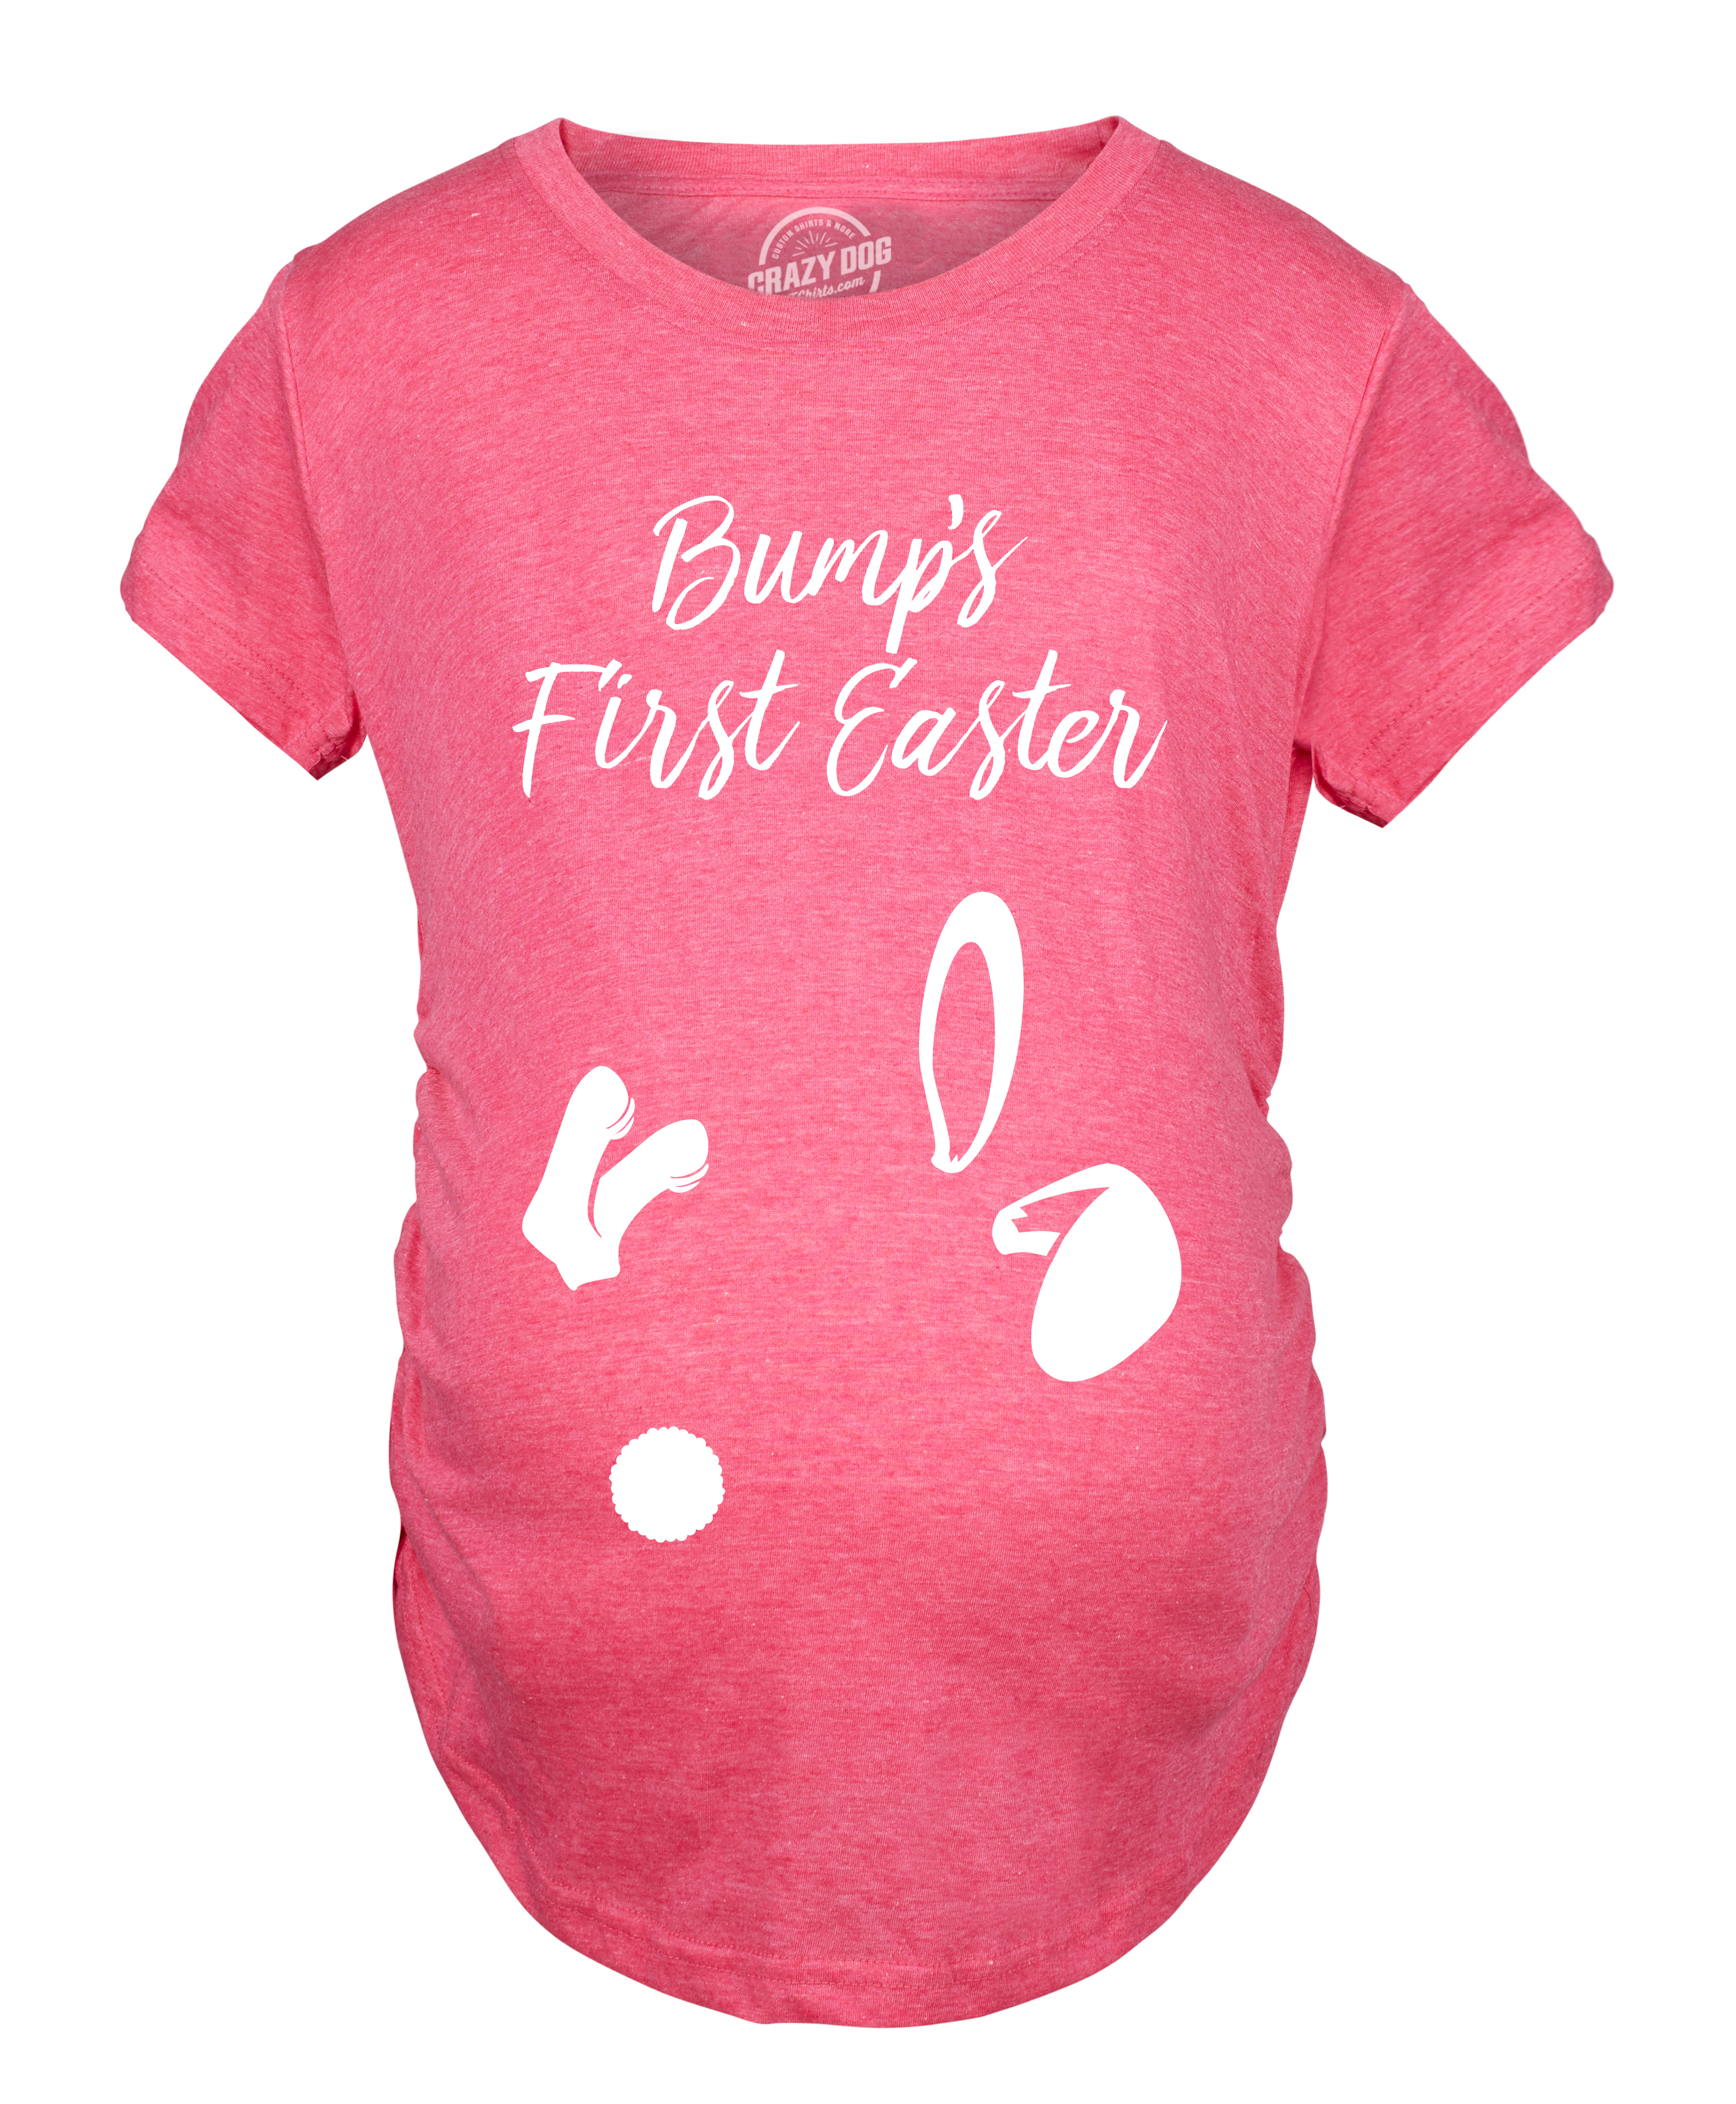 1e33b0e233542 Maternity Bumps First Easter Tshirt Adorable Pregnancy Pastel Bunny Tee  (Heather Pink) - S